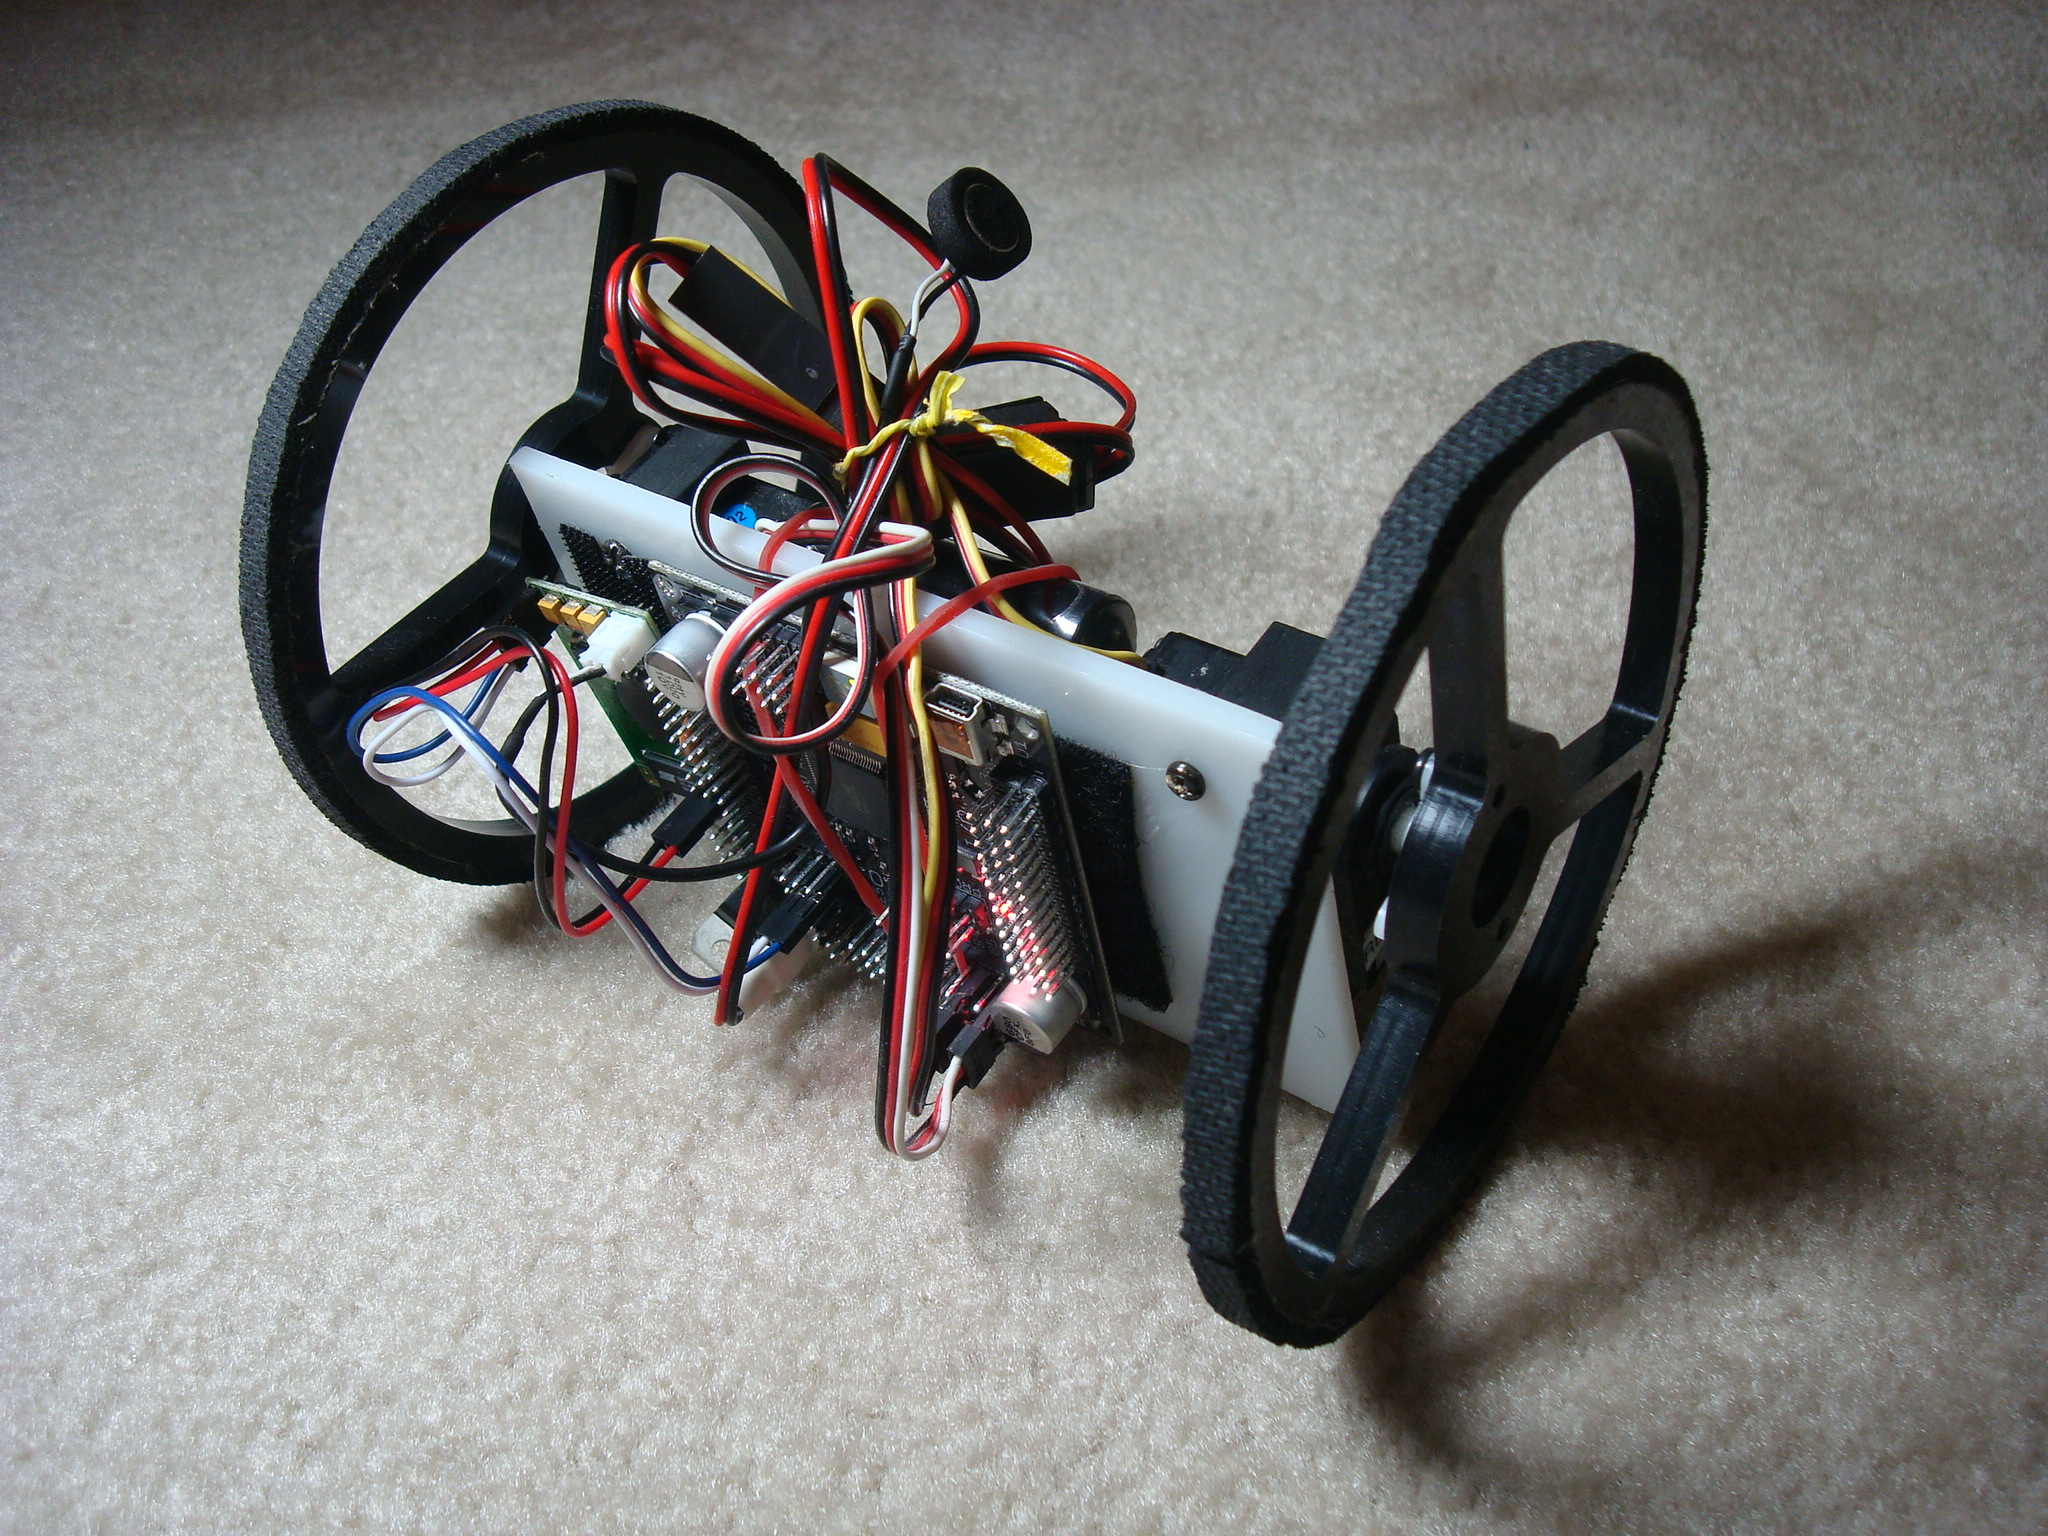 Make a Voice Controlled Robot